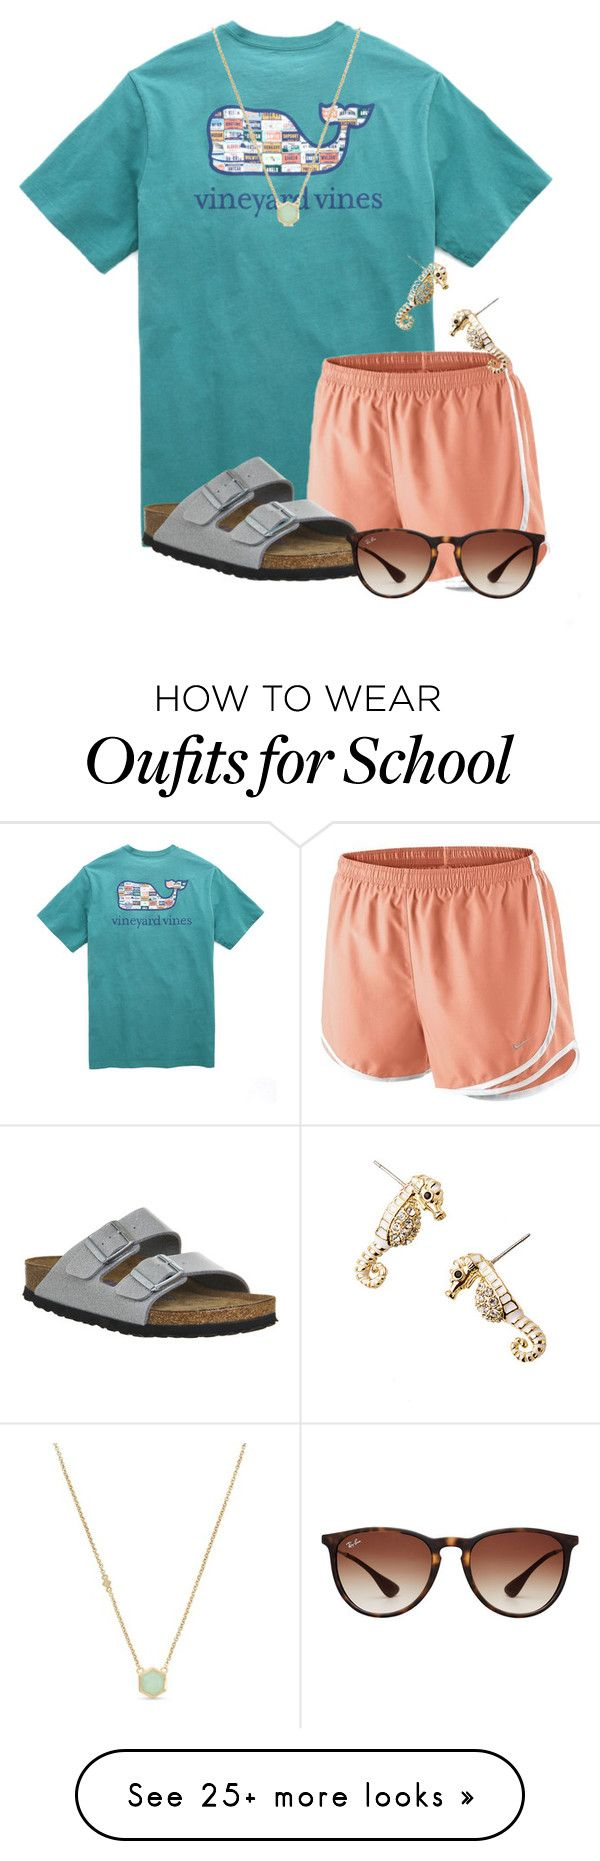 """TODAY IS THE LAST DAY OF SCHOOL!"" by flroasburn on Polyvore featuring Vineyard Vines, NIKE, Birkenstock, Ray-Ban, Cole Haan and Lilly Pulitzer"